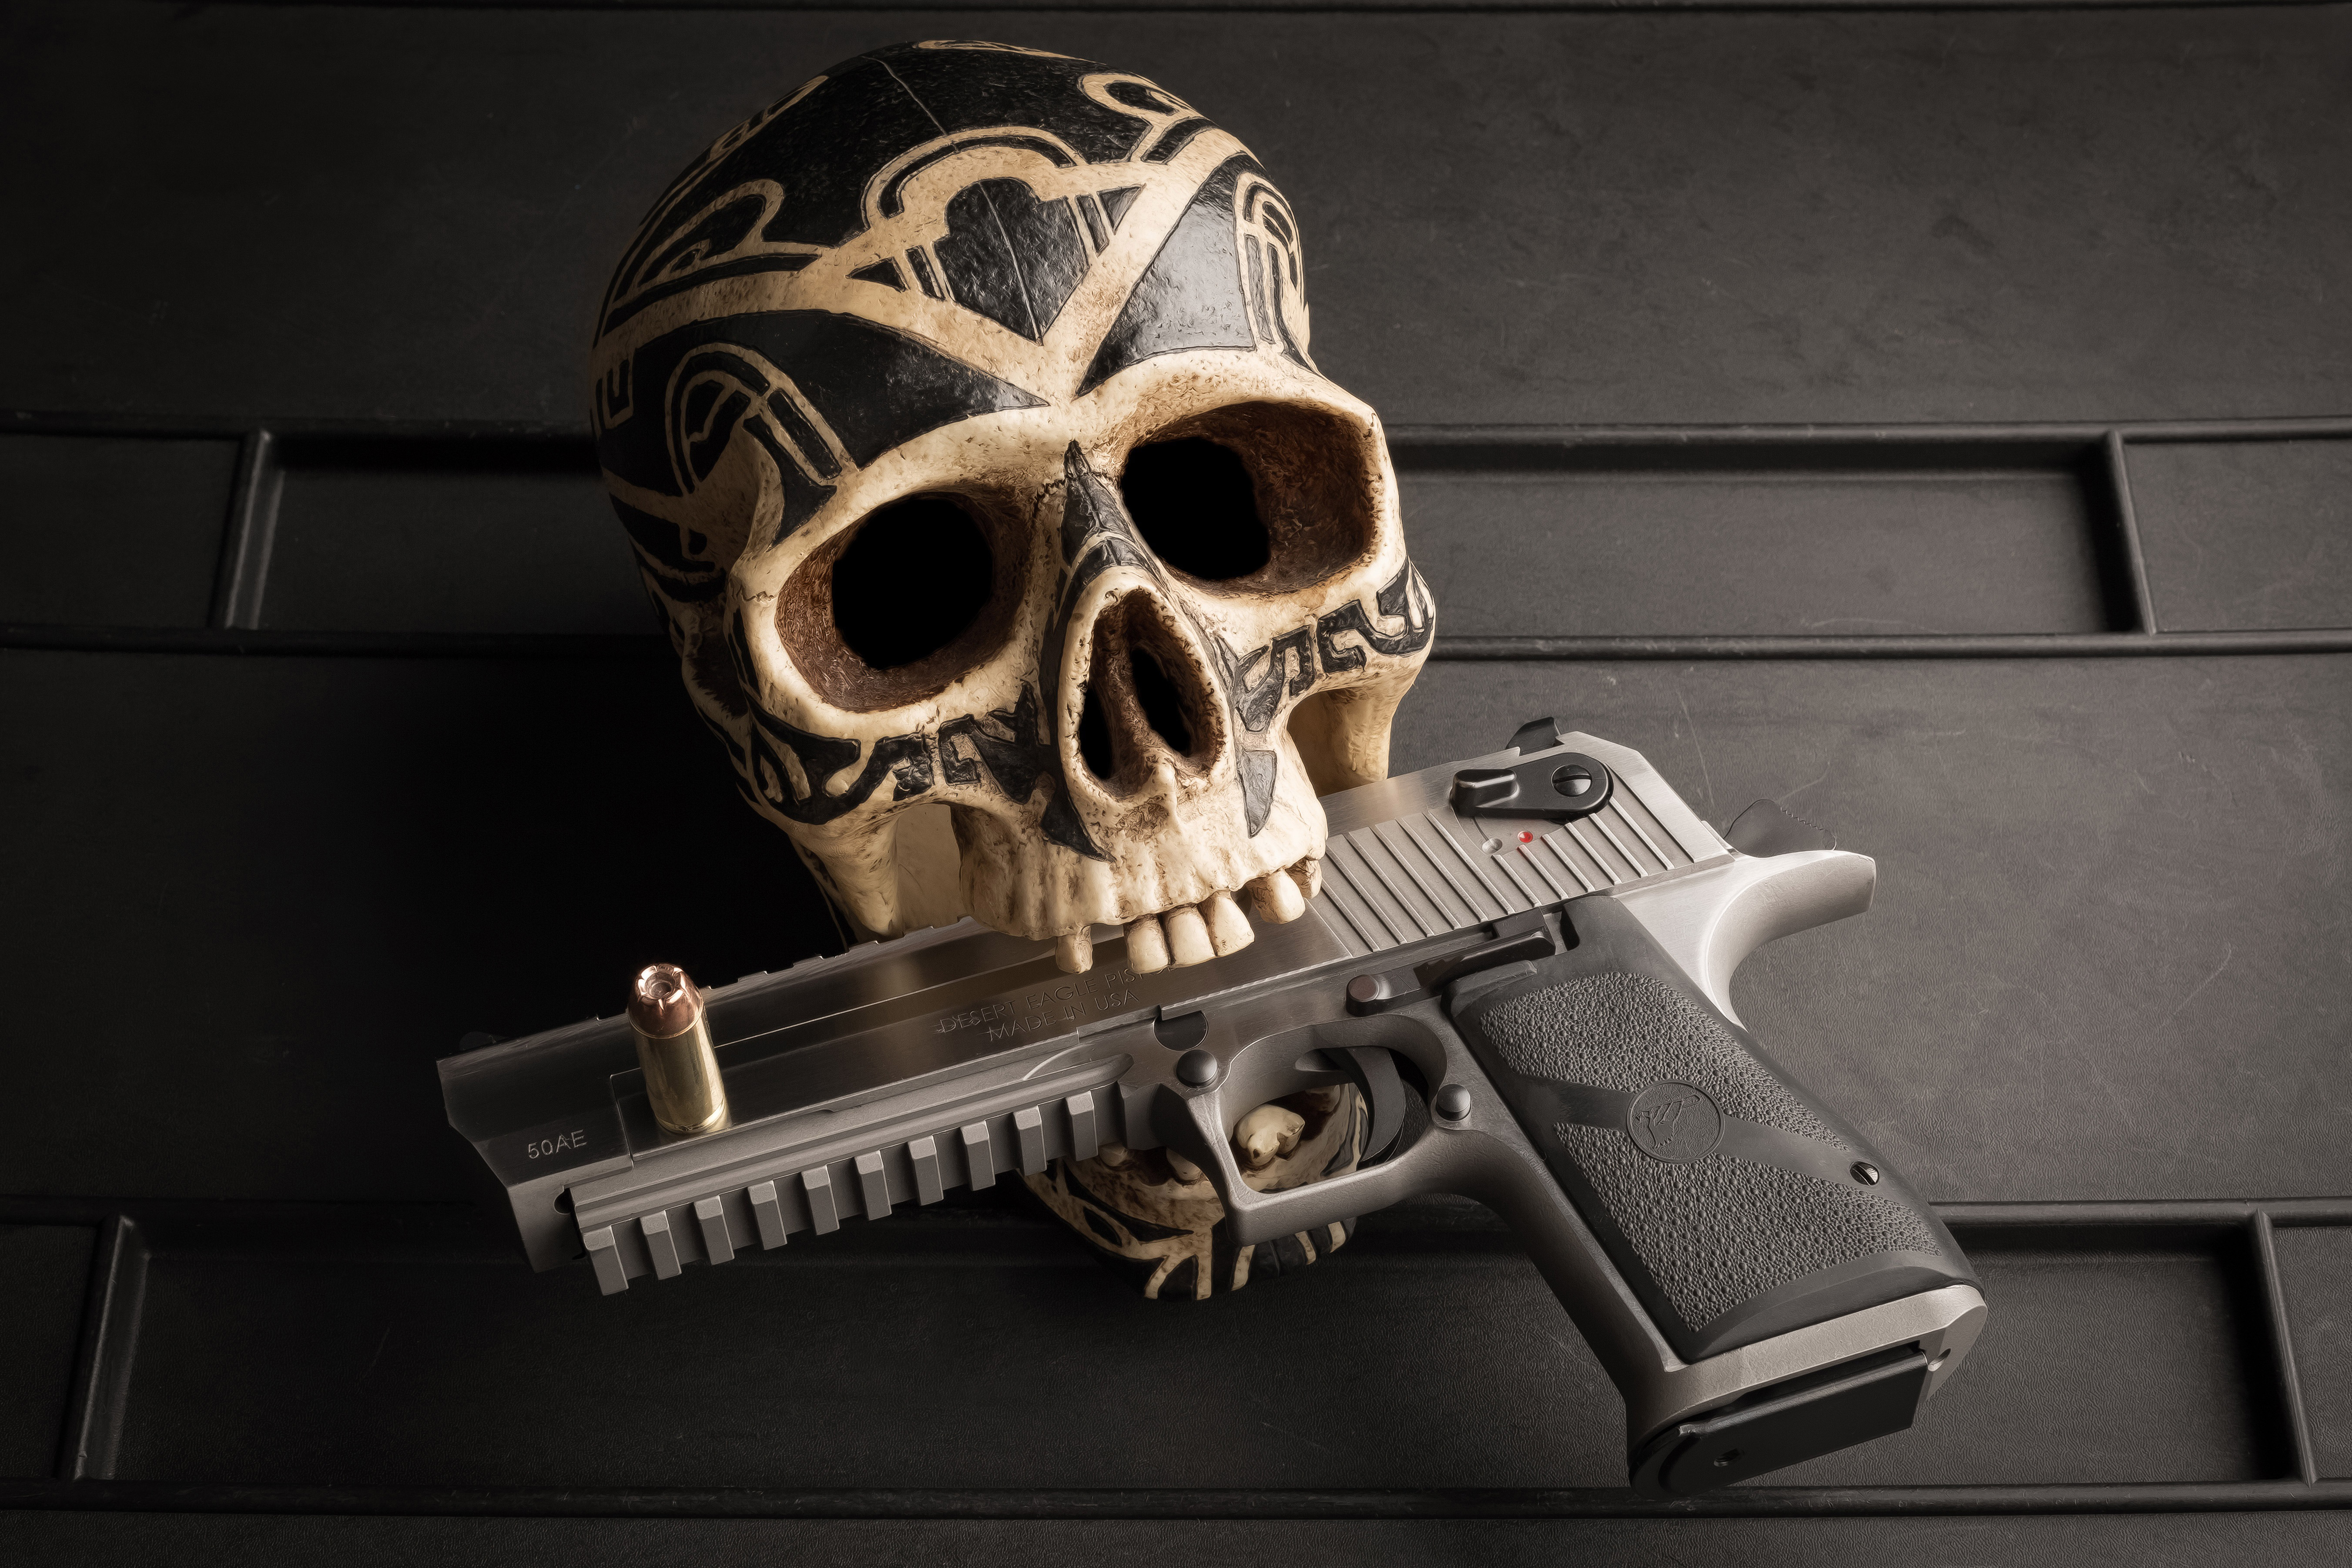 1366x768 Skull Pistol 5k 1366x768 Resolution HD 4k Wallpapers, Images, Backgrounds, Photos and ...